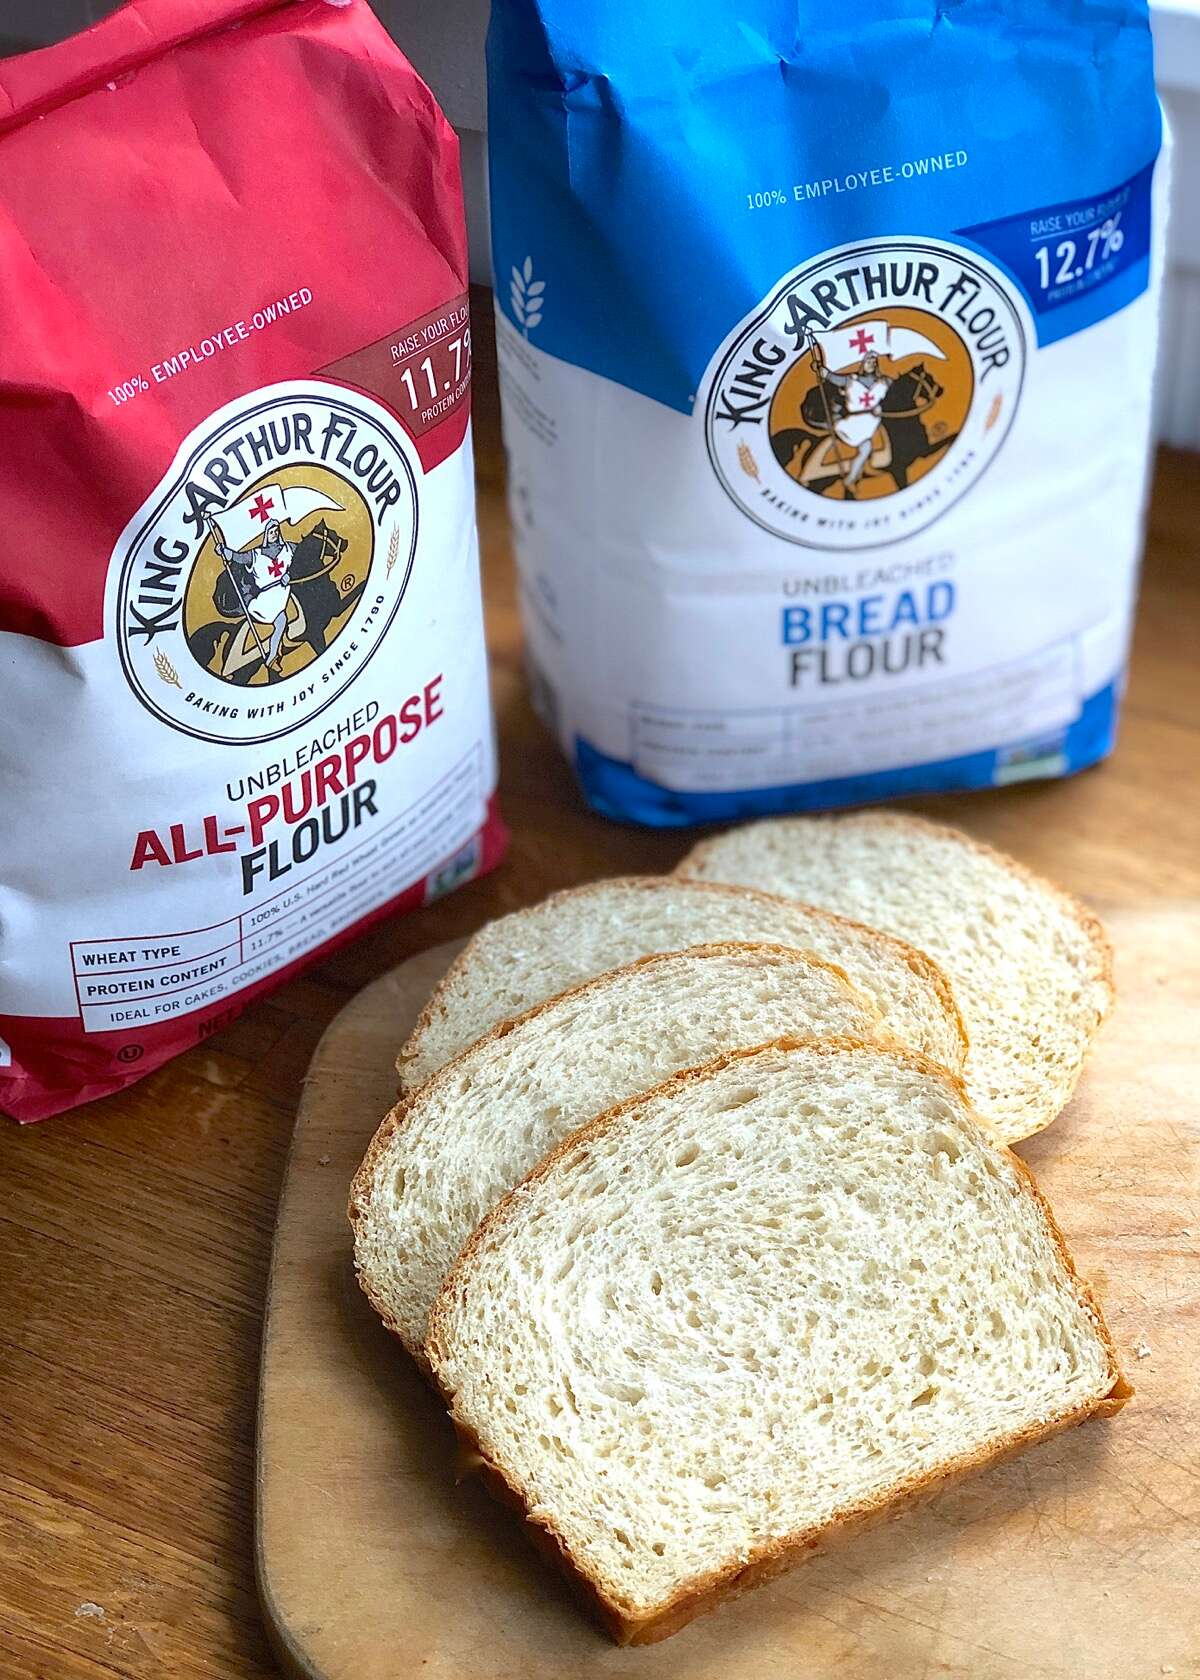 Bags of King Arthur all-purpose flour and bread flour, plus sliced oatmeal bread on a board